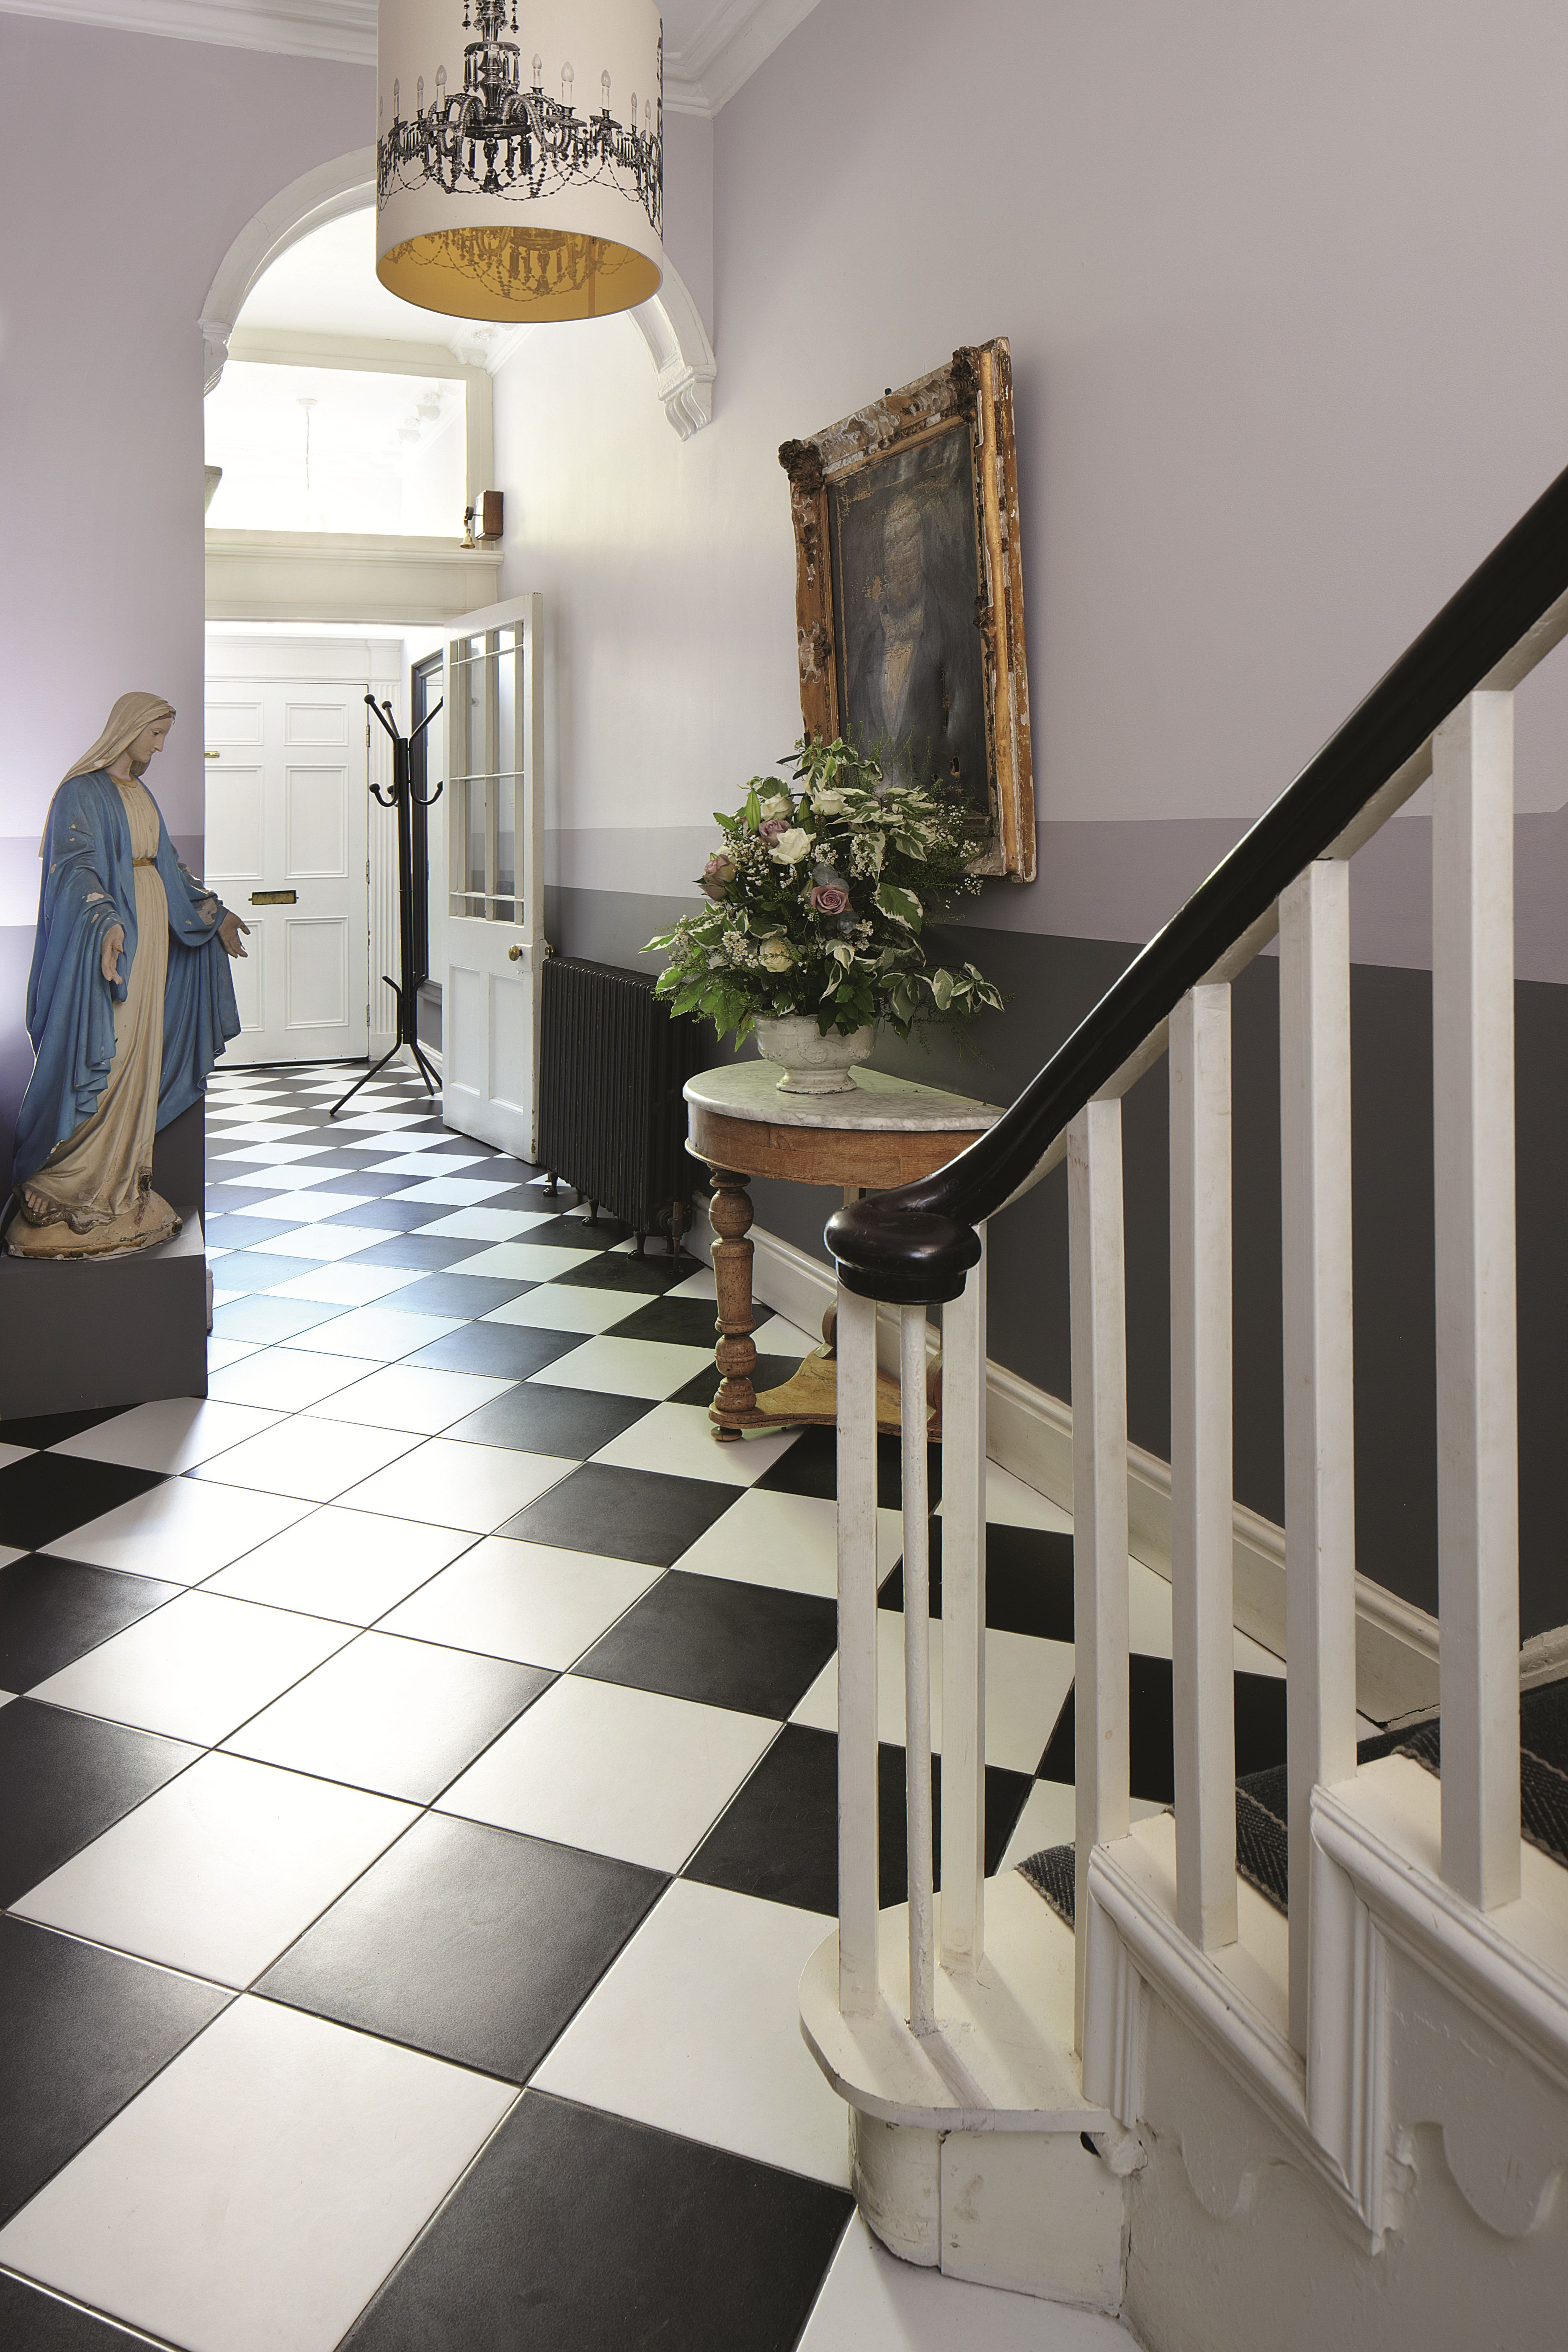 Winner Sarah Moore S Winning Makeover Of The Hallway From Bbc2 S